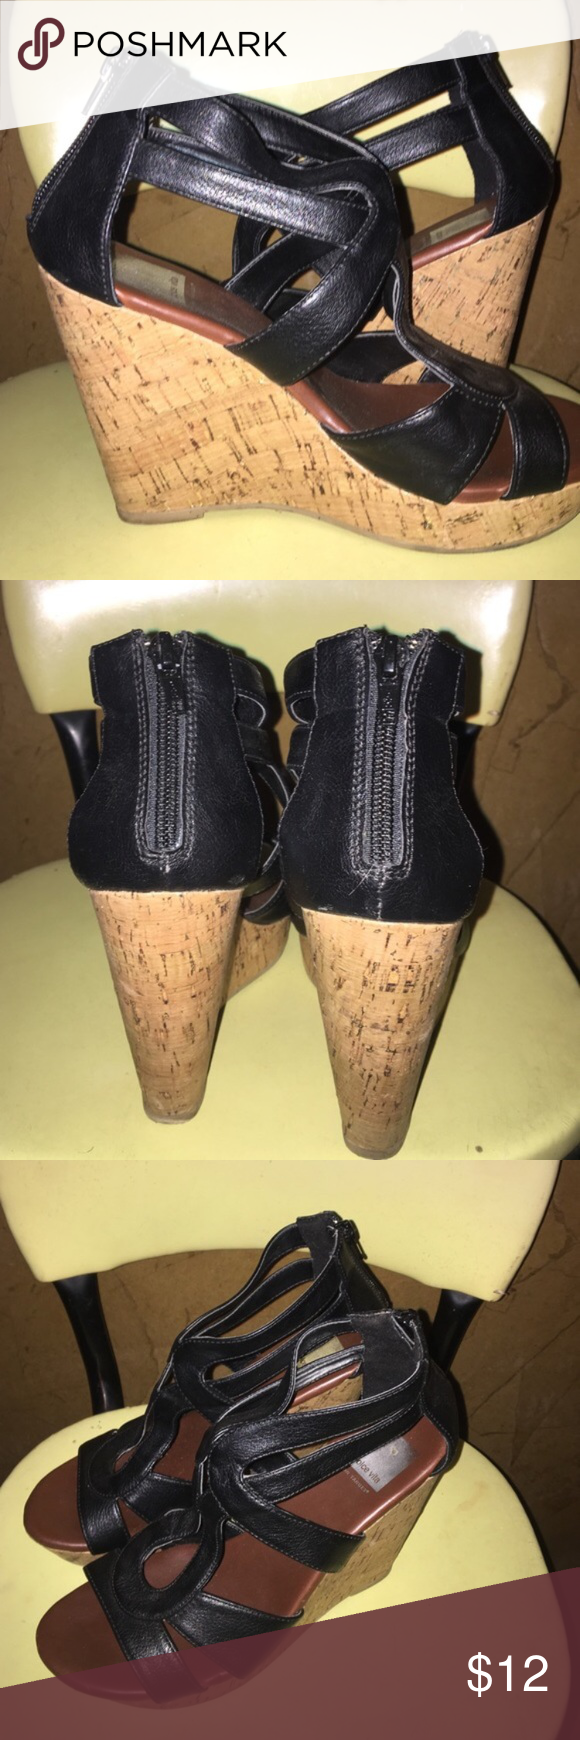 Women's Sz 7 Dolce Vita Black Sandal Wedge EUC Super cute Black wedge sandal. Zips up on back of Sandal.  Super cute wedge that is PERFECT for any Summer  time outfit!  There are zero worn areas on this shoe.  They are in Excellent condition. Dolce Vita Shoes Sandals